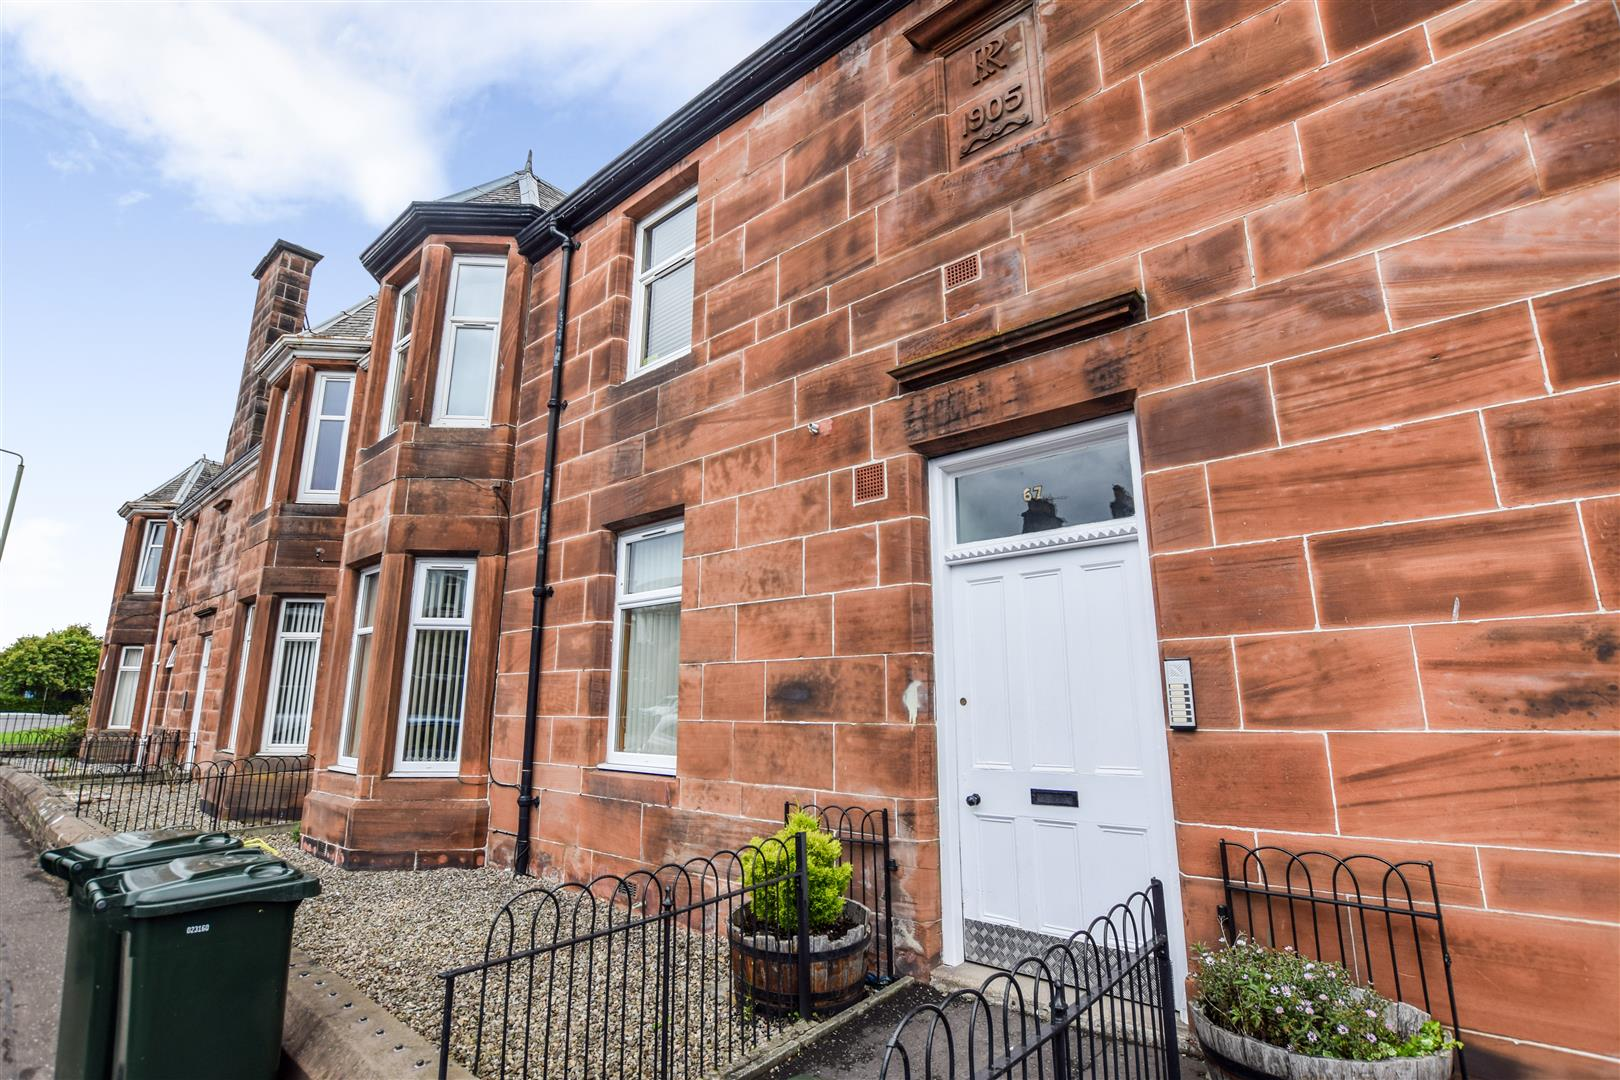 24, Closeburn Terrace, 67 Feus Road, Perth, Perthshire, PH1 2AX, UK